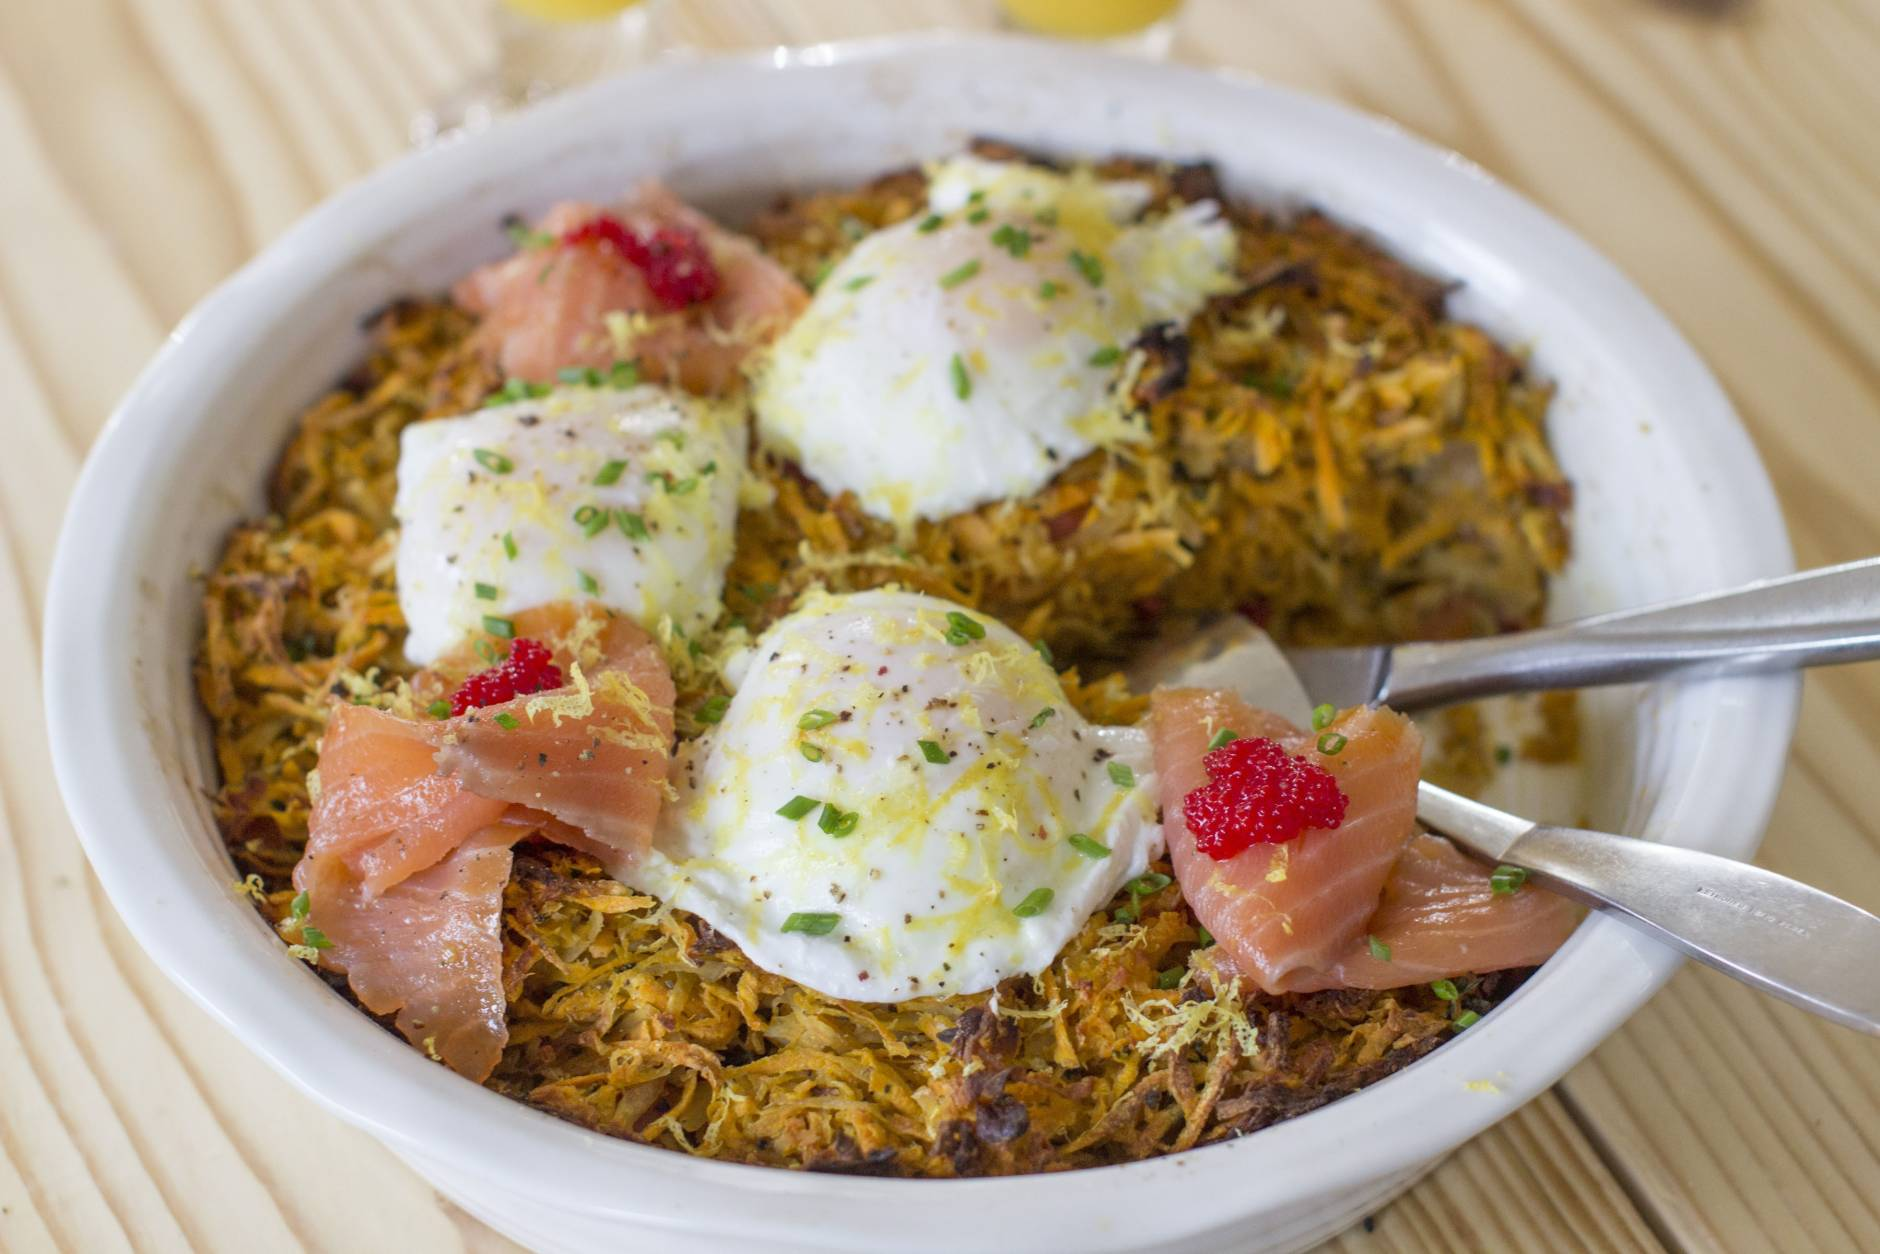 This Nov. 17, 2014 photo shows sweet potato and salmon hash bake in Concord, N.H. This dish can be baked the day before, then reheated in a 350 F oven for 15 to 20 minutes. (AP Photo/Matthew Mead)